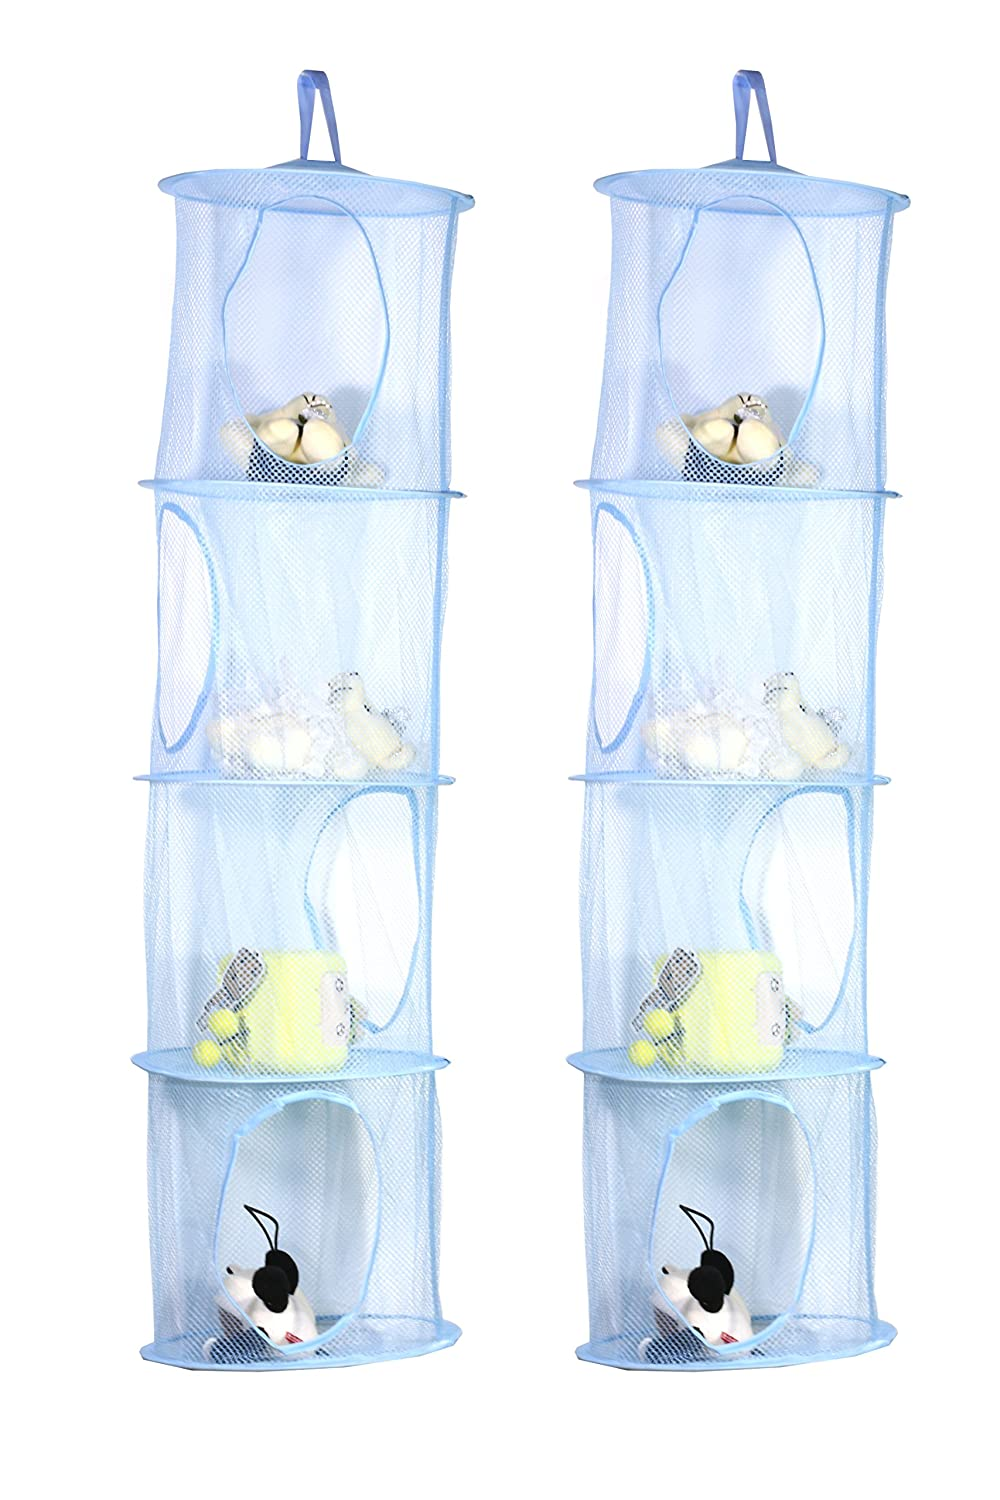 TIRSU Mesh Hanging Storage Organizer toy storage space saver bags 3 Compartments for kid room blue 2pieces lz0001-blue